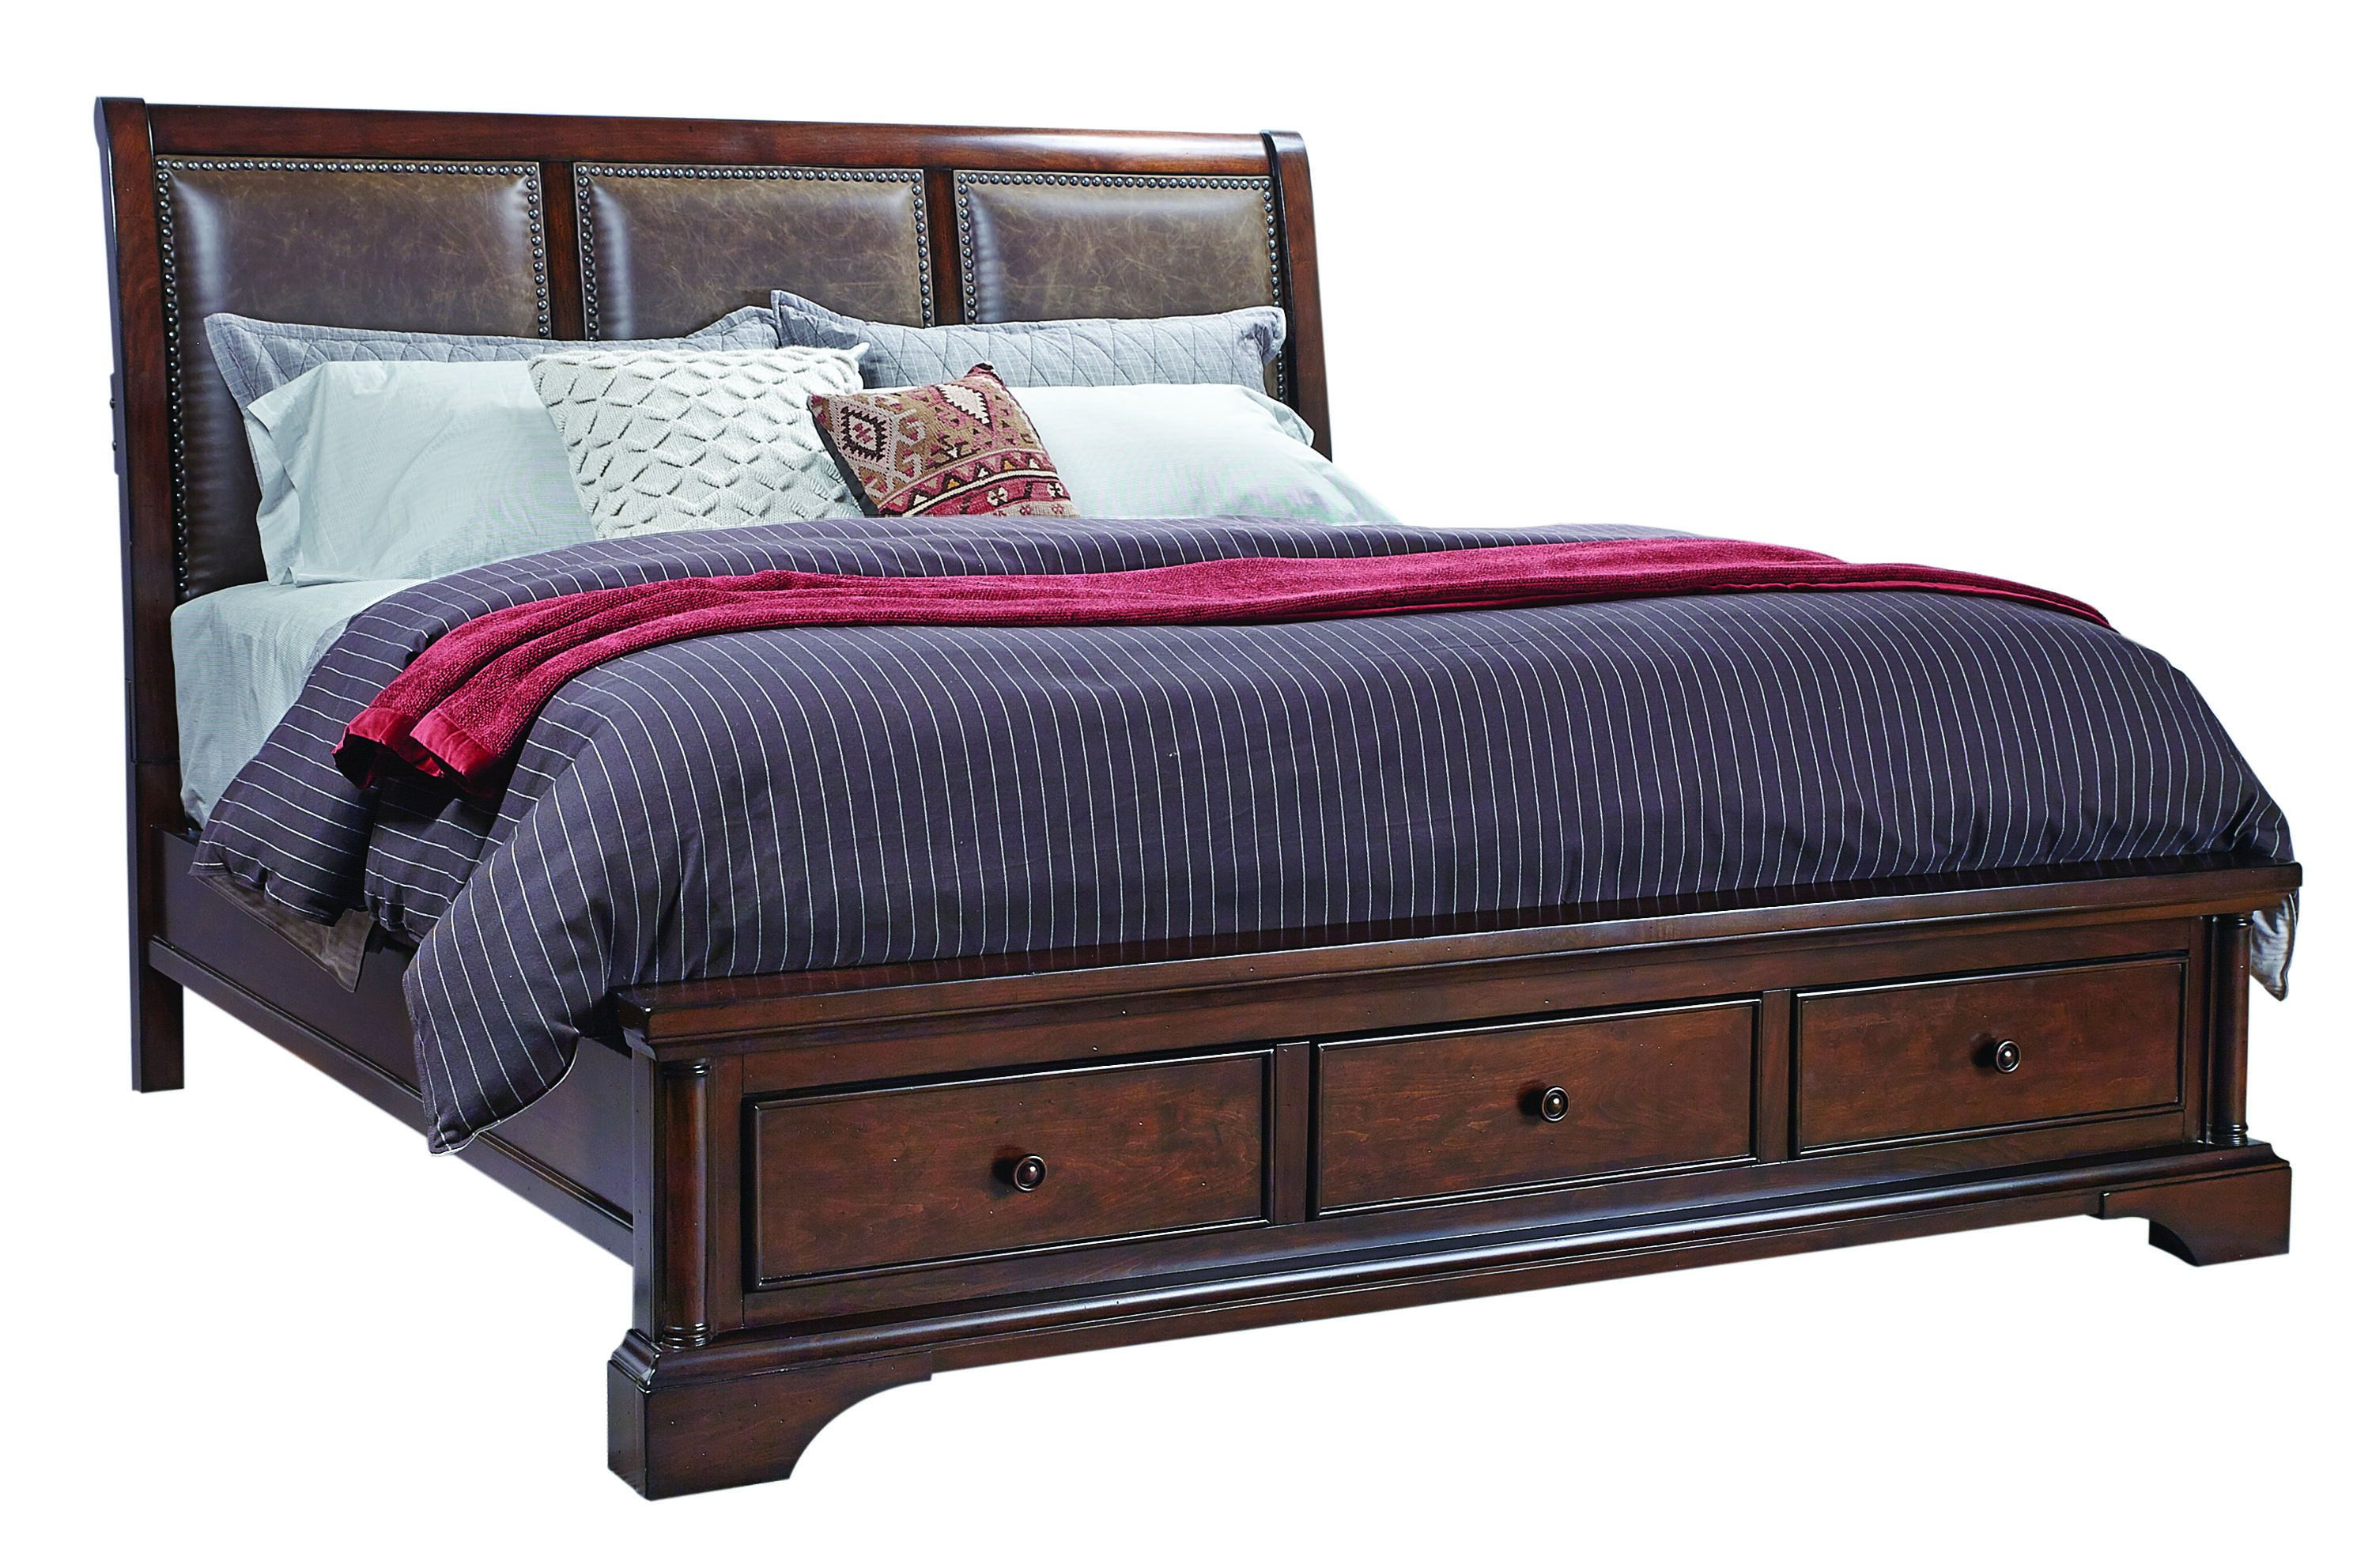 Bancroft Upholstered Sleigh Bed with Storage Footboard